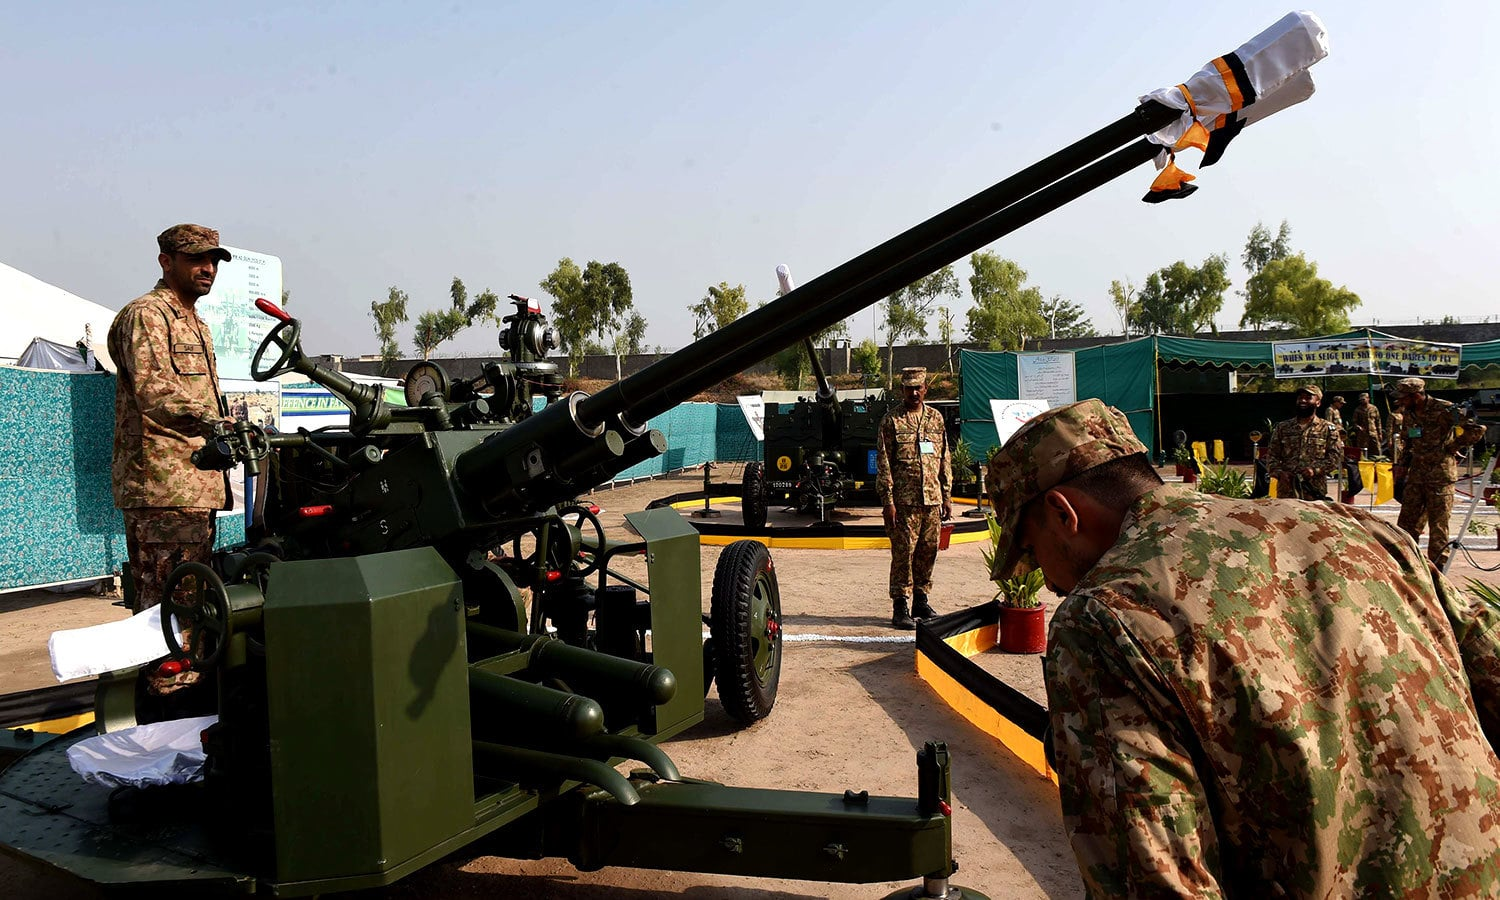 Soldiers stand along an anti-aircraft gun. — AFP